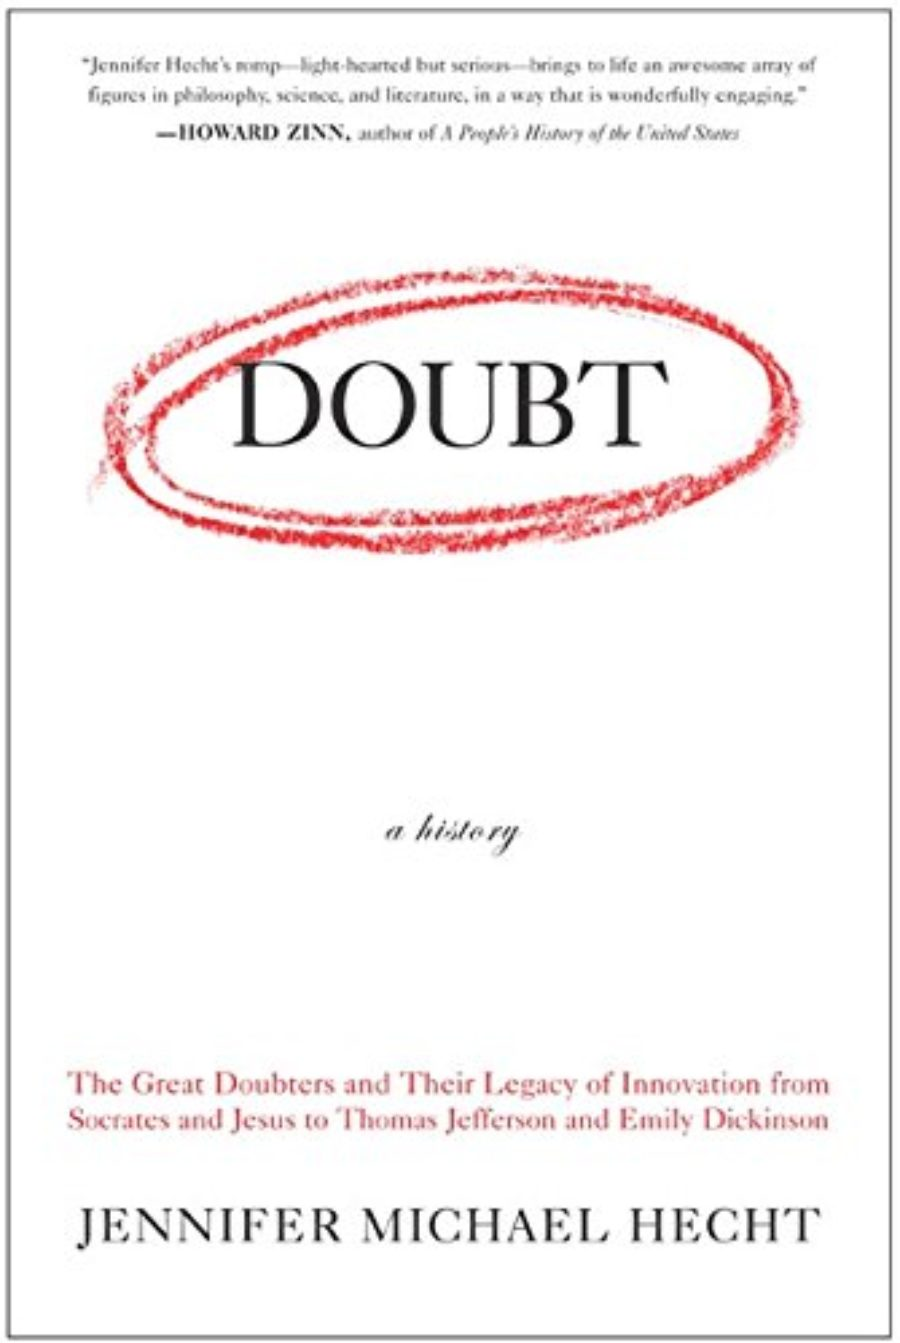 Cover of Doubt: A History: The Great Doubters and Their Legacy of Innovation from Socrates and Jesus to Thomas Jefferson and Emily Dickinson